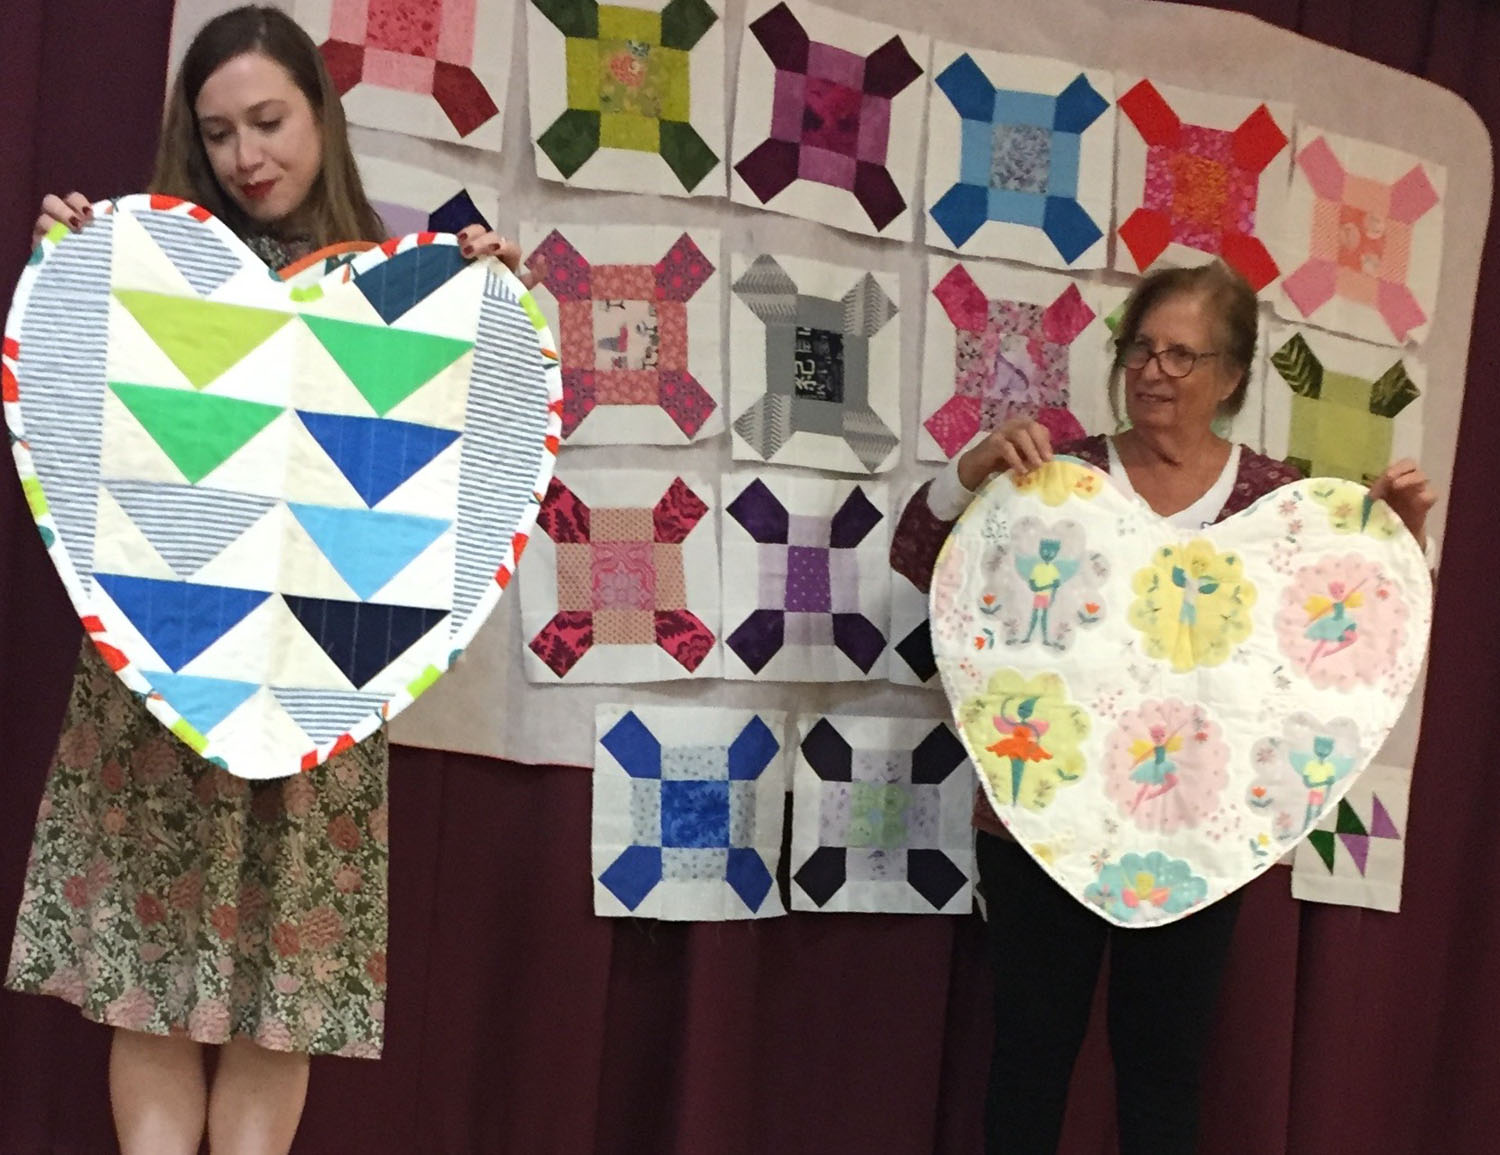 Neonatal baby heart quilts by Trudi Roach